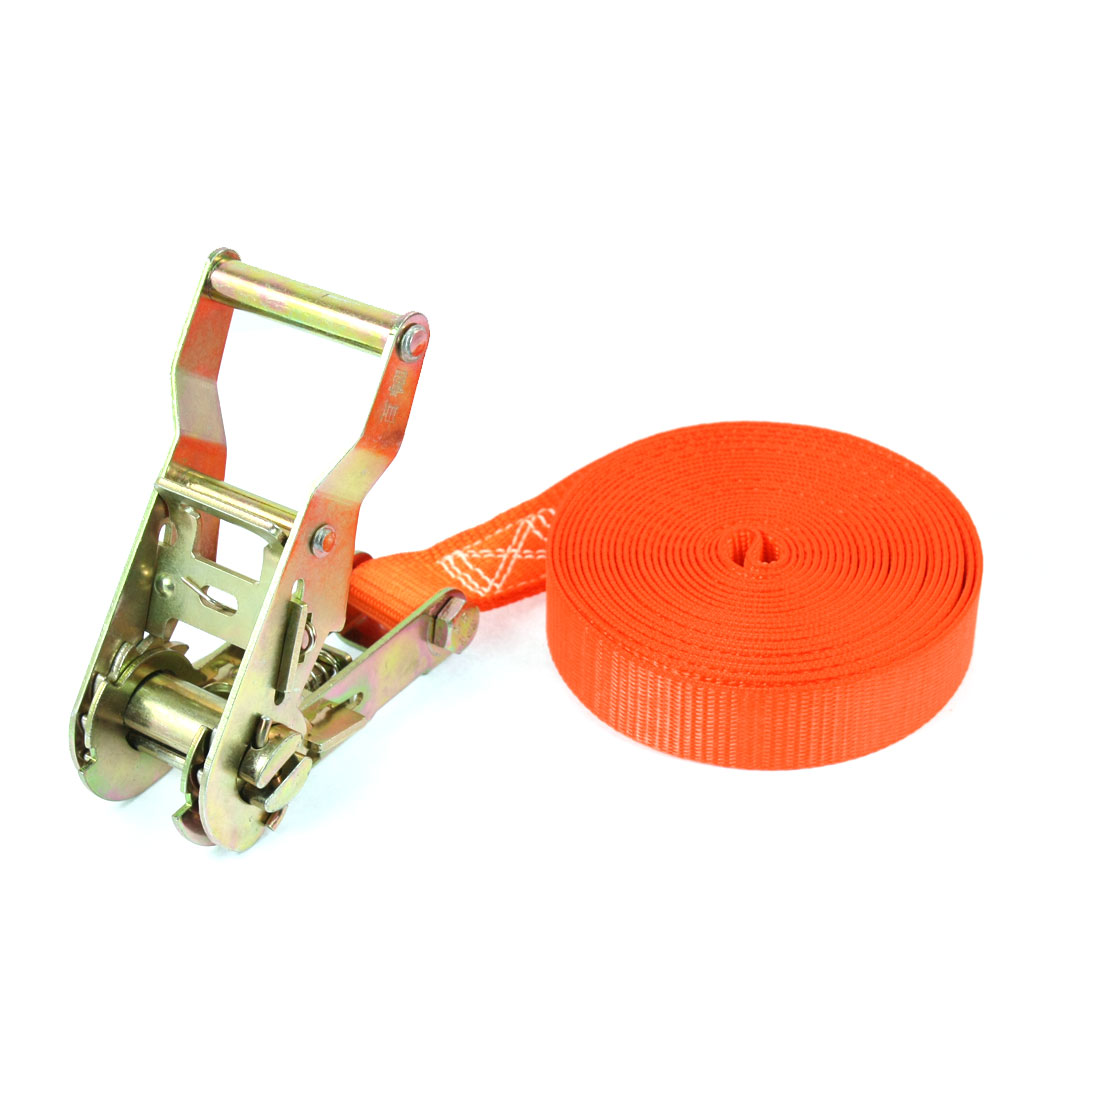 Travel Luggage Binding Band Metal Ratchet Tie Down Strap 5M 16ft Orange